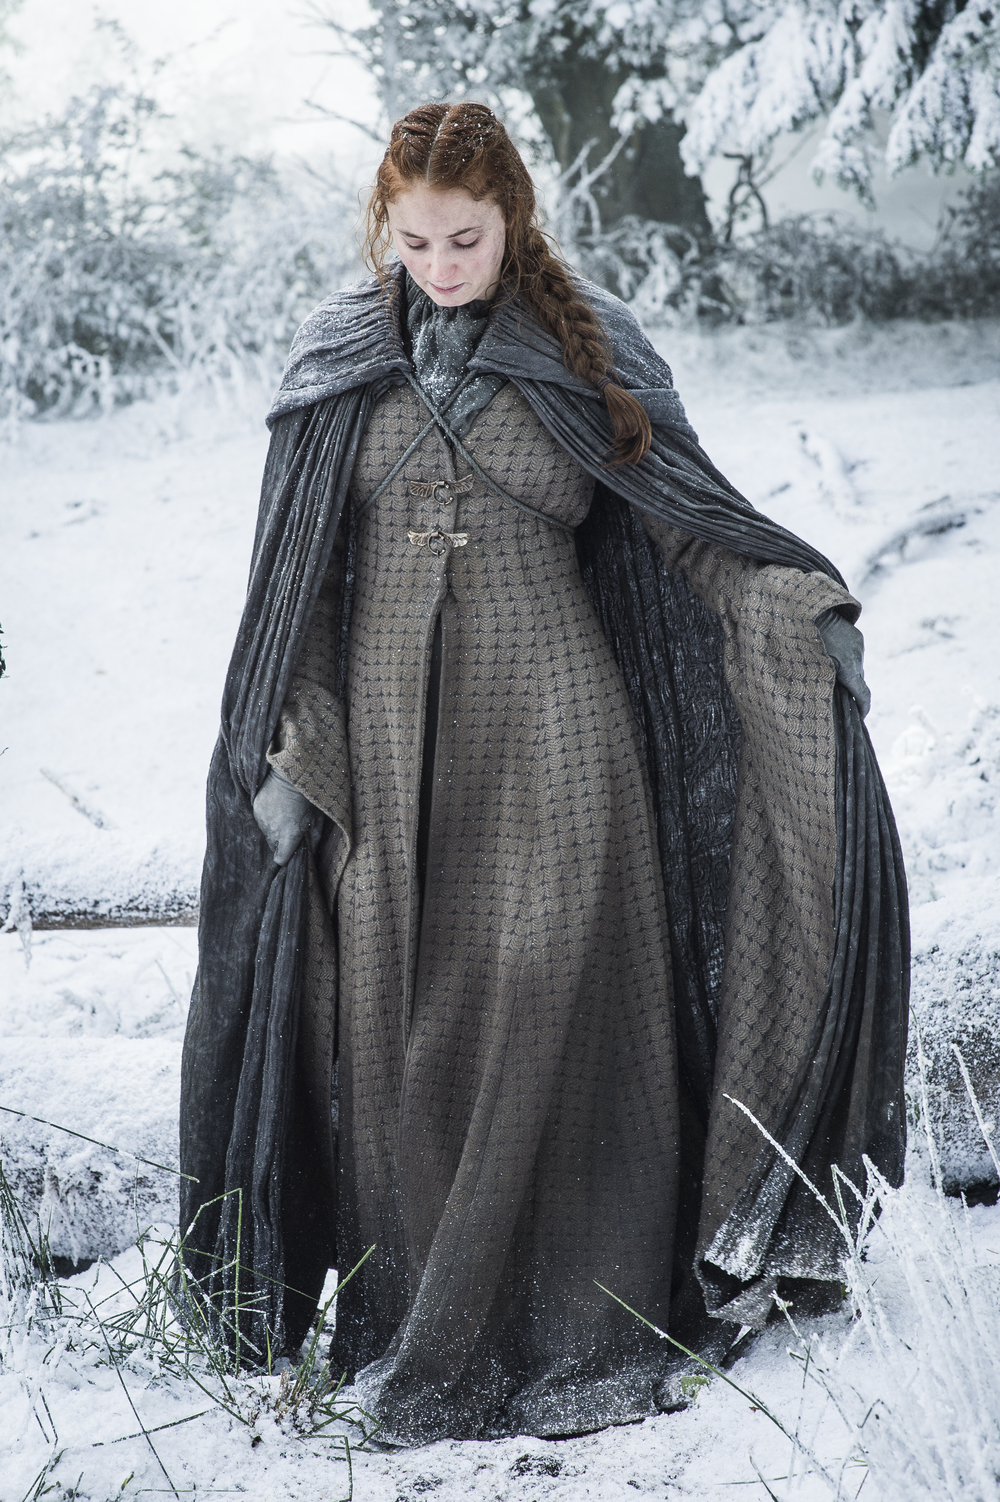 Galerry Arya Stark game of thrones season 7 episode 1 images